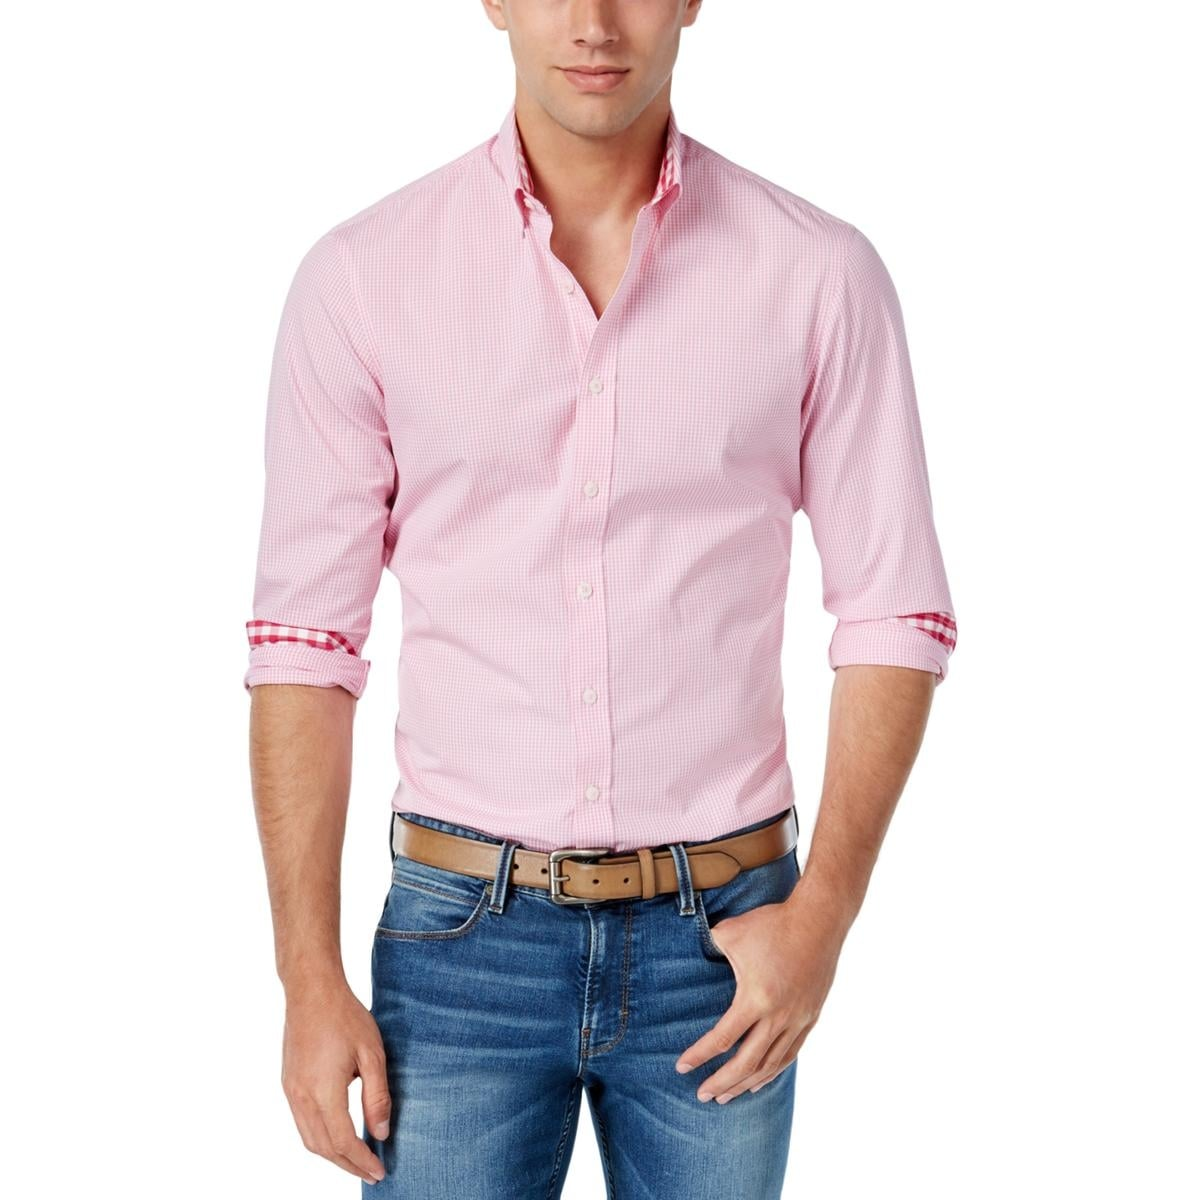 28ebb456367 Shop Park West Mens Button-Down Shirt Mini-Gingham Long Sleeves - Free  Shipping On Orders Over $45 - Overstock - 20353924